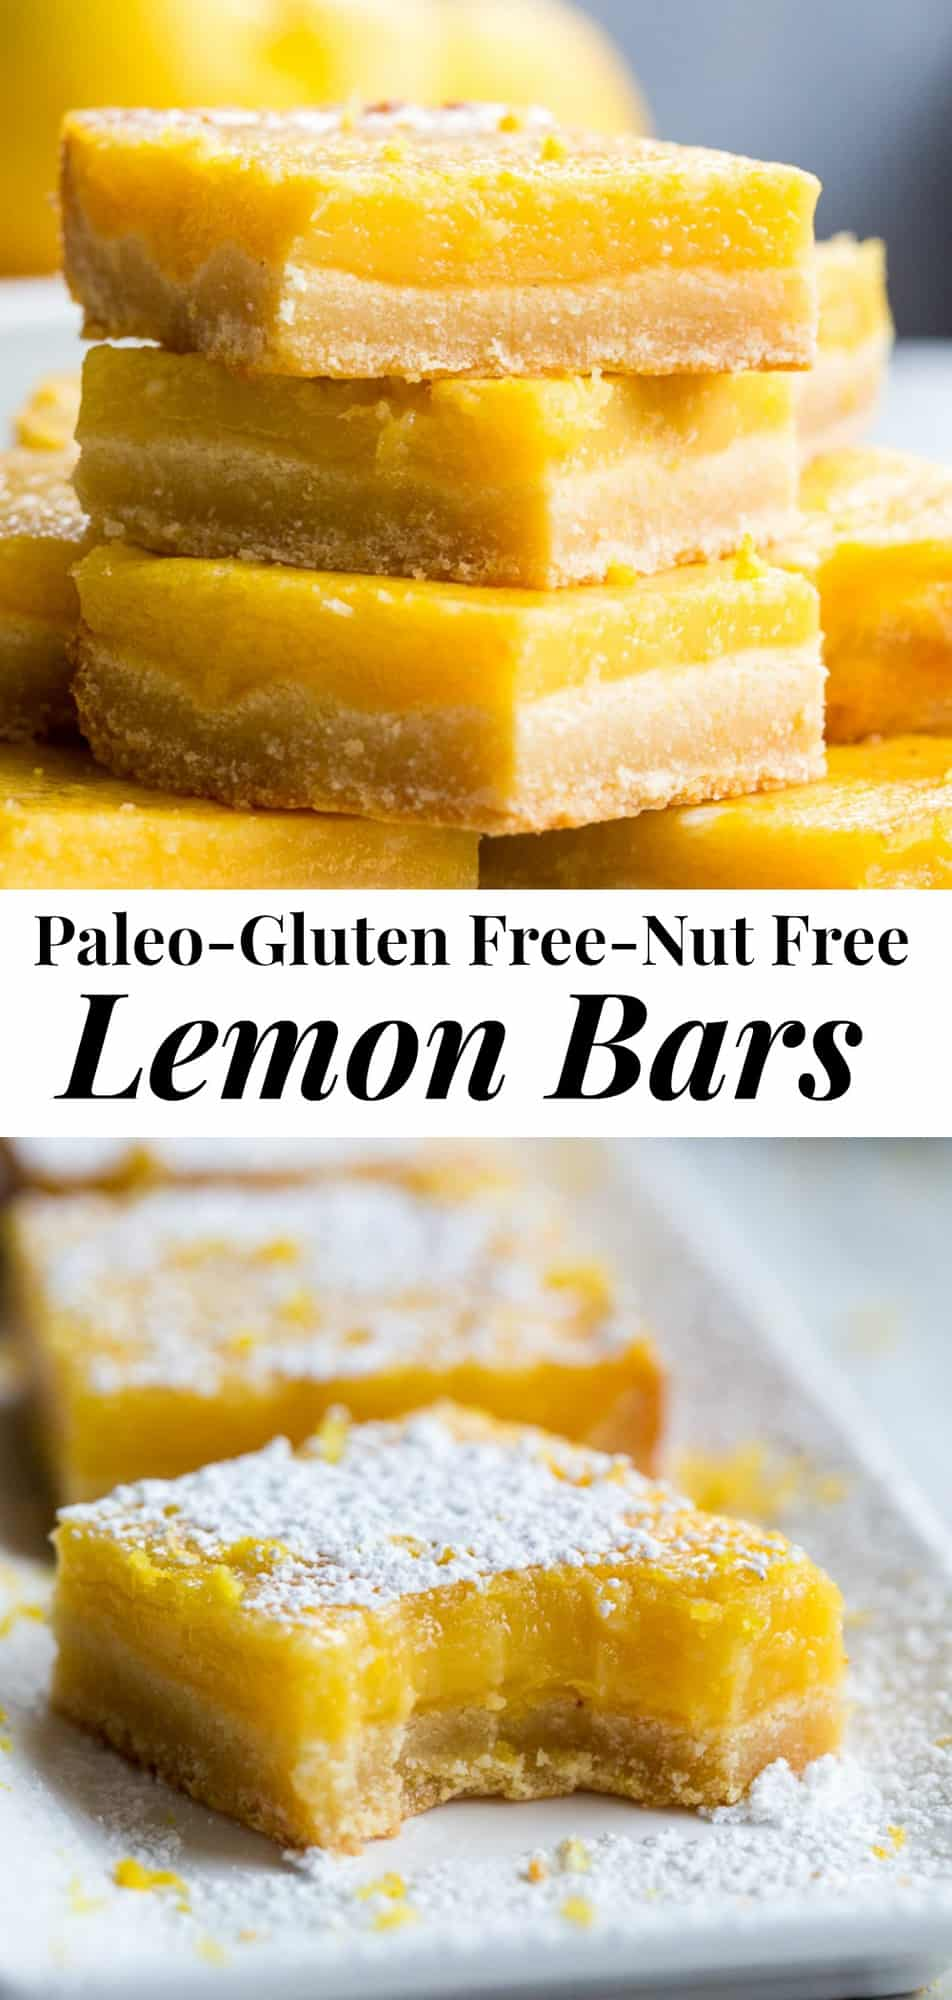 These creamy paleo lemon bars have a nut free, grain free honey-sweetened shortbread crust with a perfectly sweet-tart lemon custard layer to top!  Dust with organic powdered sugar or dollop with coconut whipped cream for a deliciously dreamy dessert! #lemonbars #glutenfree #paleo #nutfree